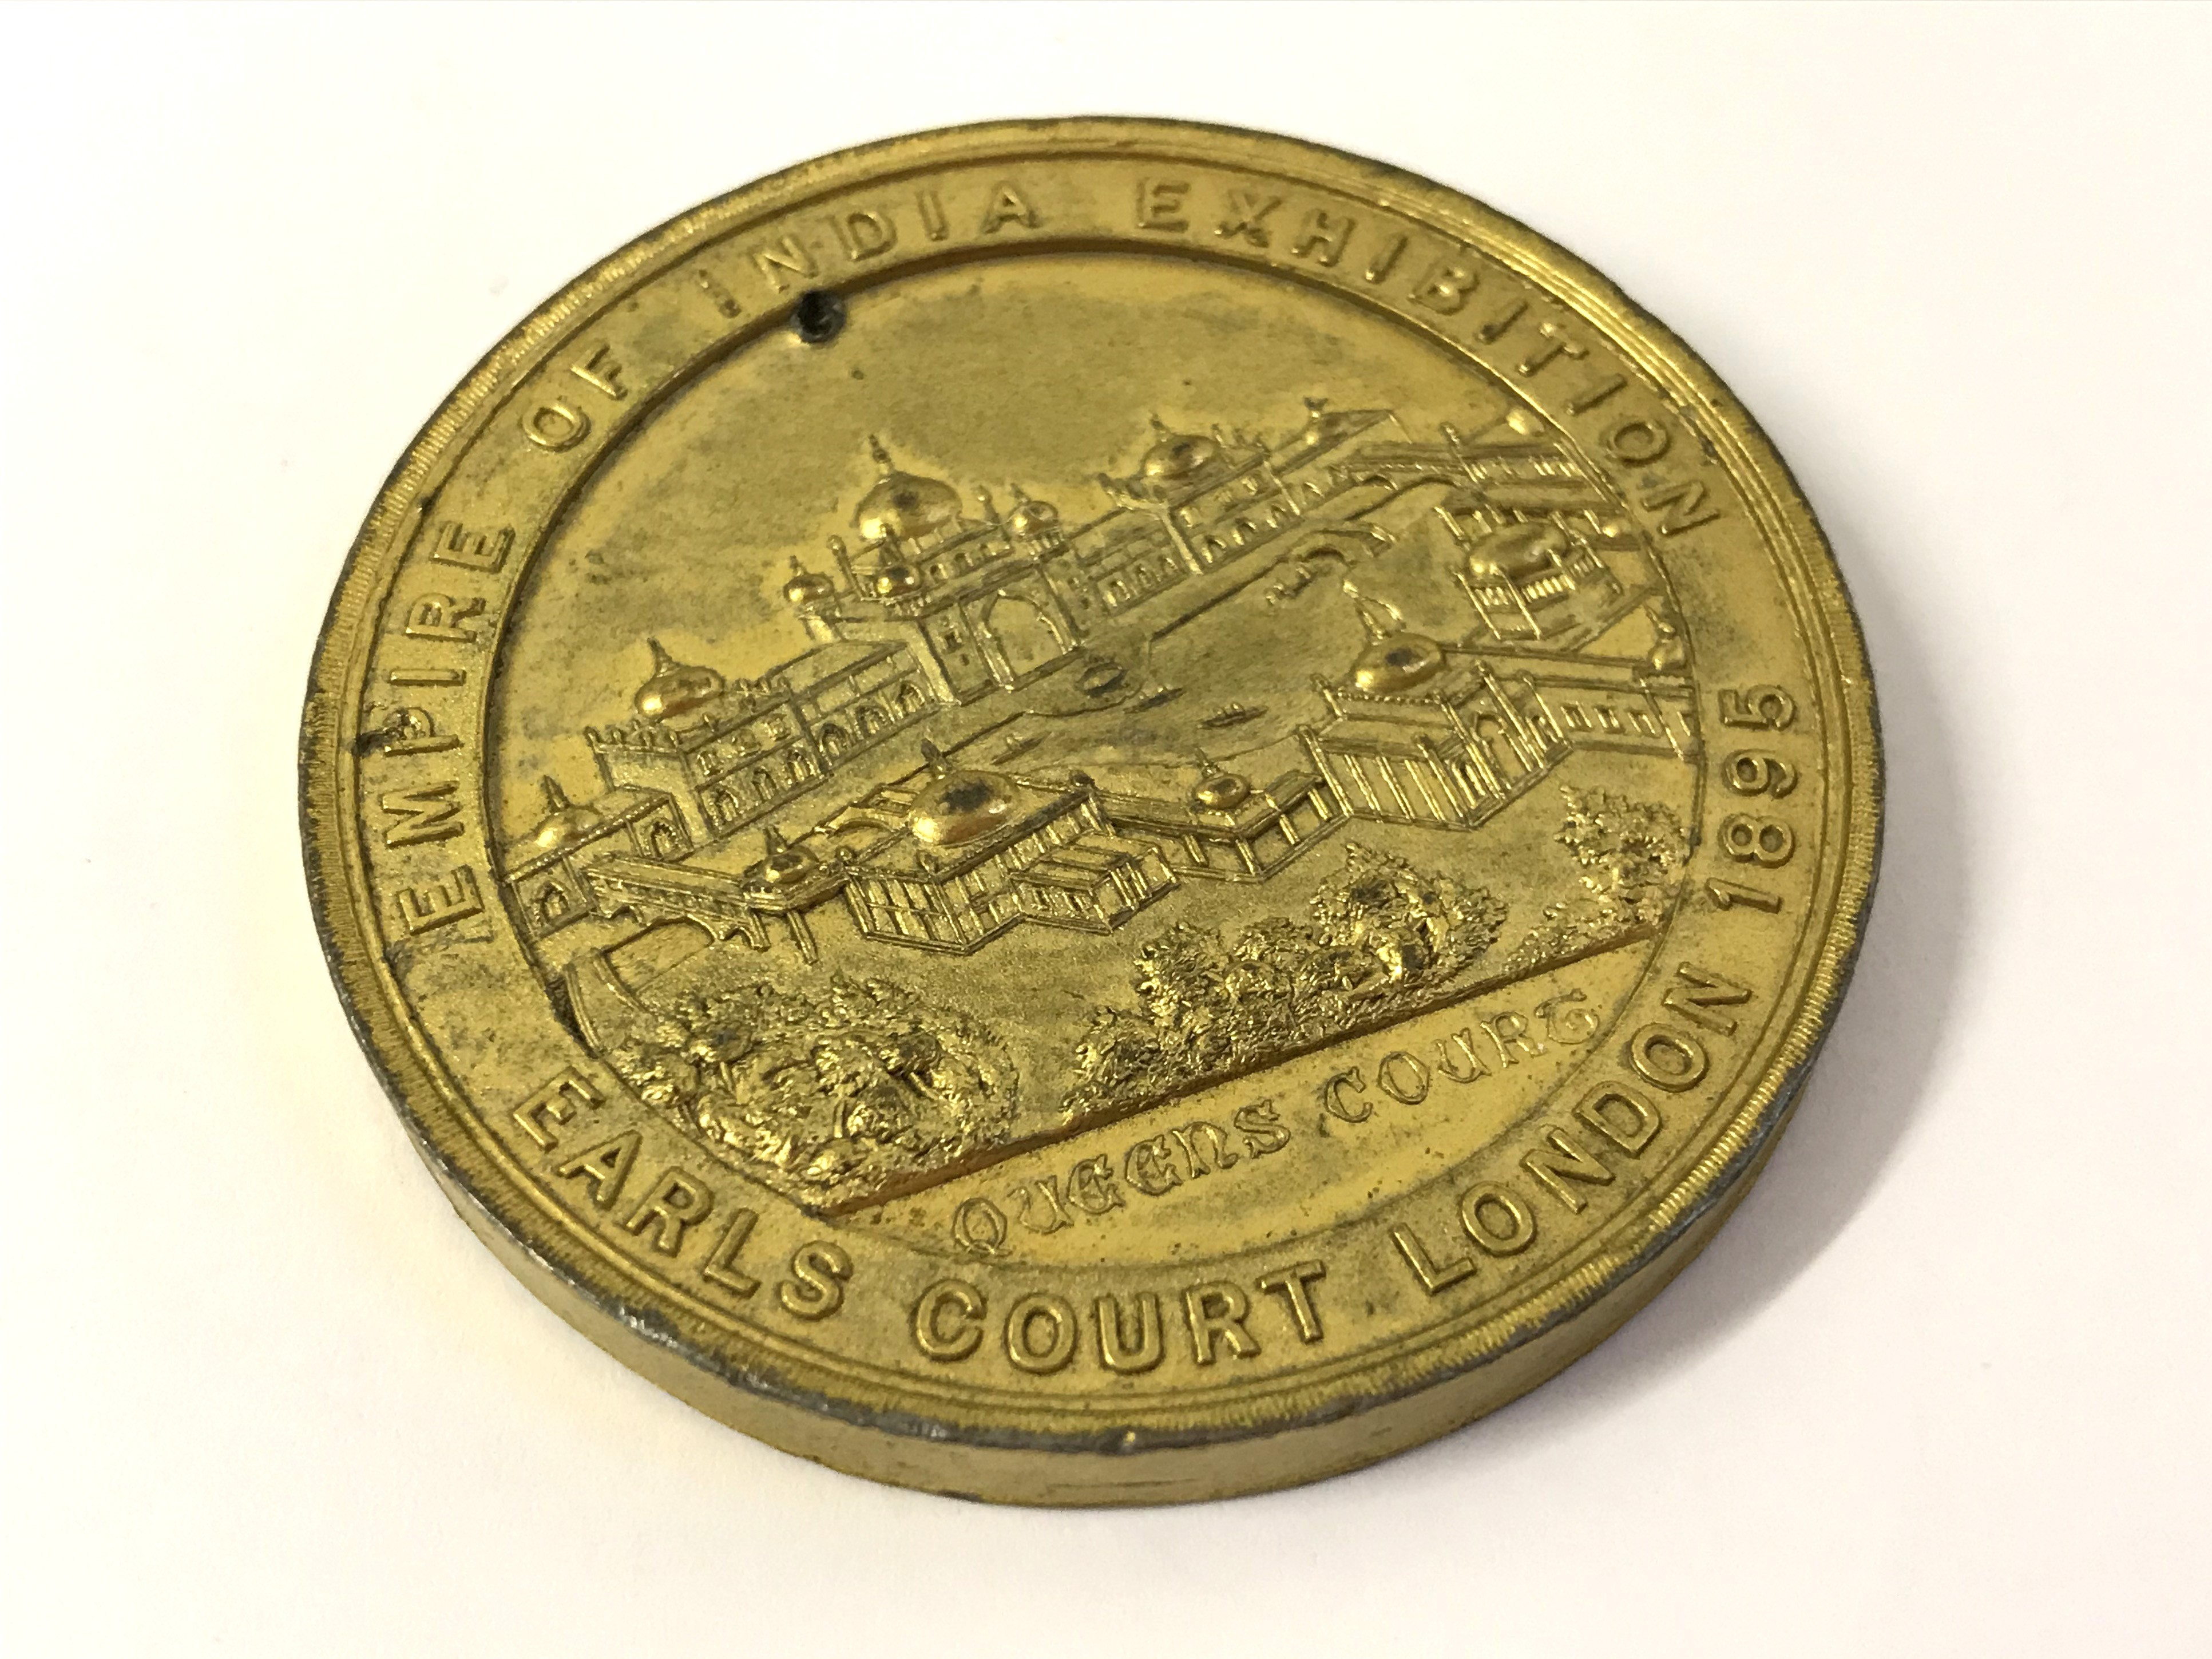 Lot 12 - CONCEPTION & DESIGN OF IMRE KIRALFY MEDAL - EMPIRE OF INDIA EXHIBITION - EARLS COURT LONDON 1895